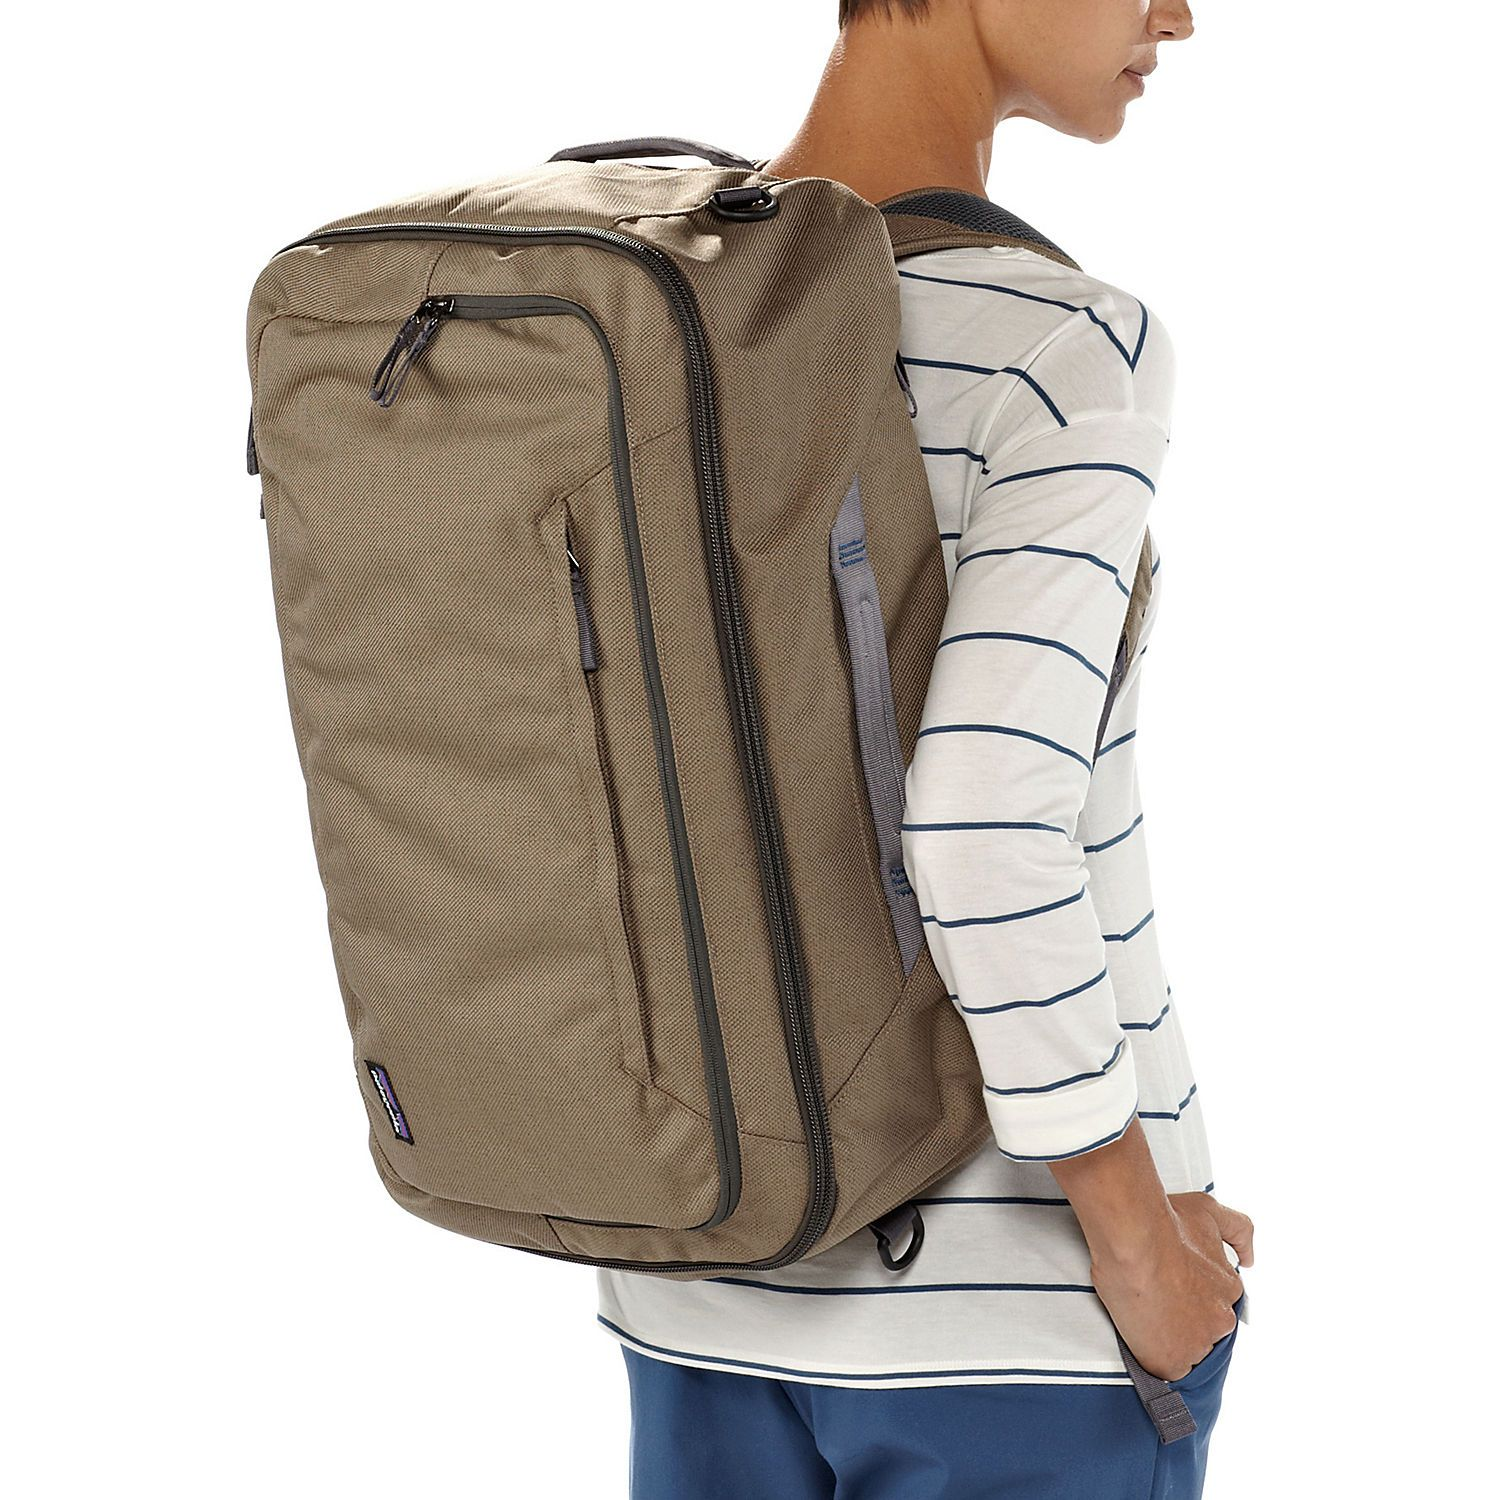 3482c7a537e5 Transport Mlc Travel Backpack 45l